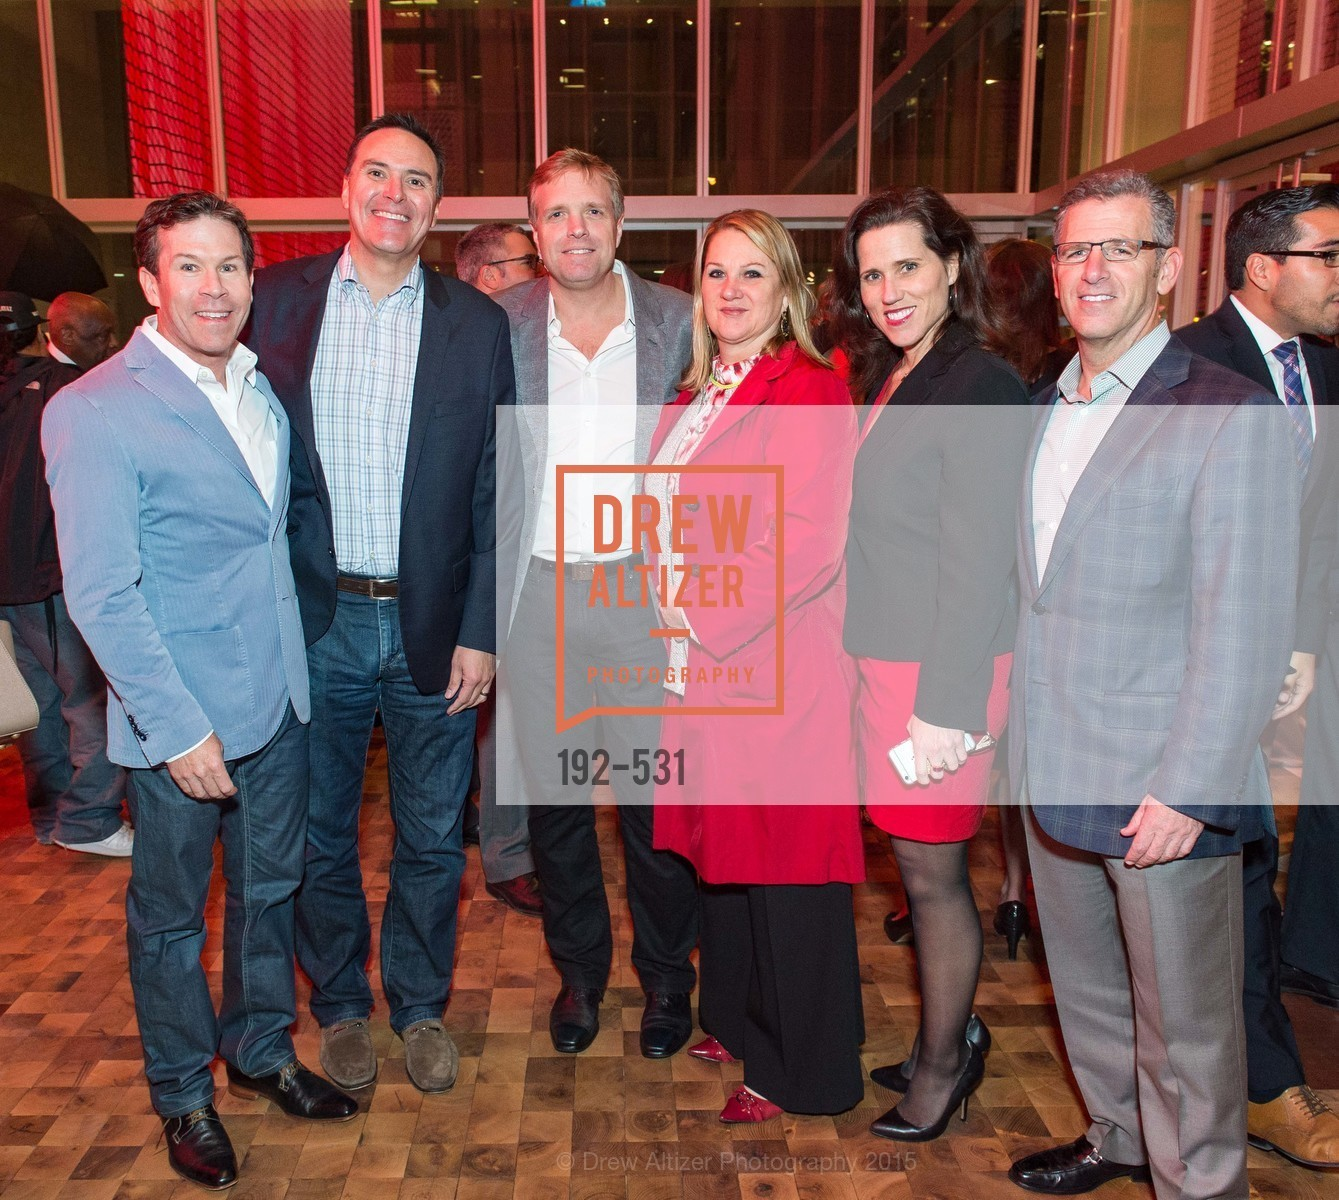 Jeff Sciaroni, Charles Gehring, Jeff Peters, Sandra Schmit, Stefanie Hay, Jeff Oster, Kilroy Unveiling Presents Virtual Depictions: San Francisco by Refik Anadol, 350 Mission Street. 350 Mission Street, November 16th, 2015,Drew Altizer, Drew Altizer Photography, full-service event agency, private events, San Francisco photographer, photographer California